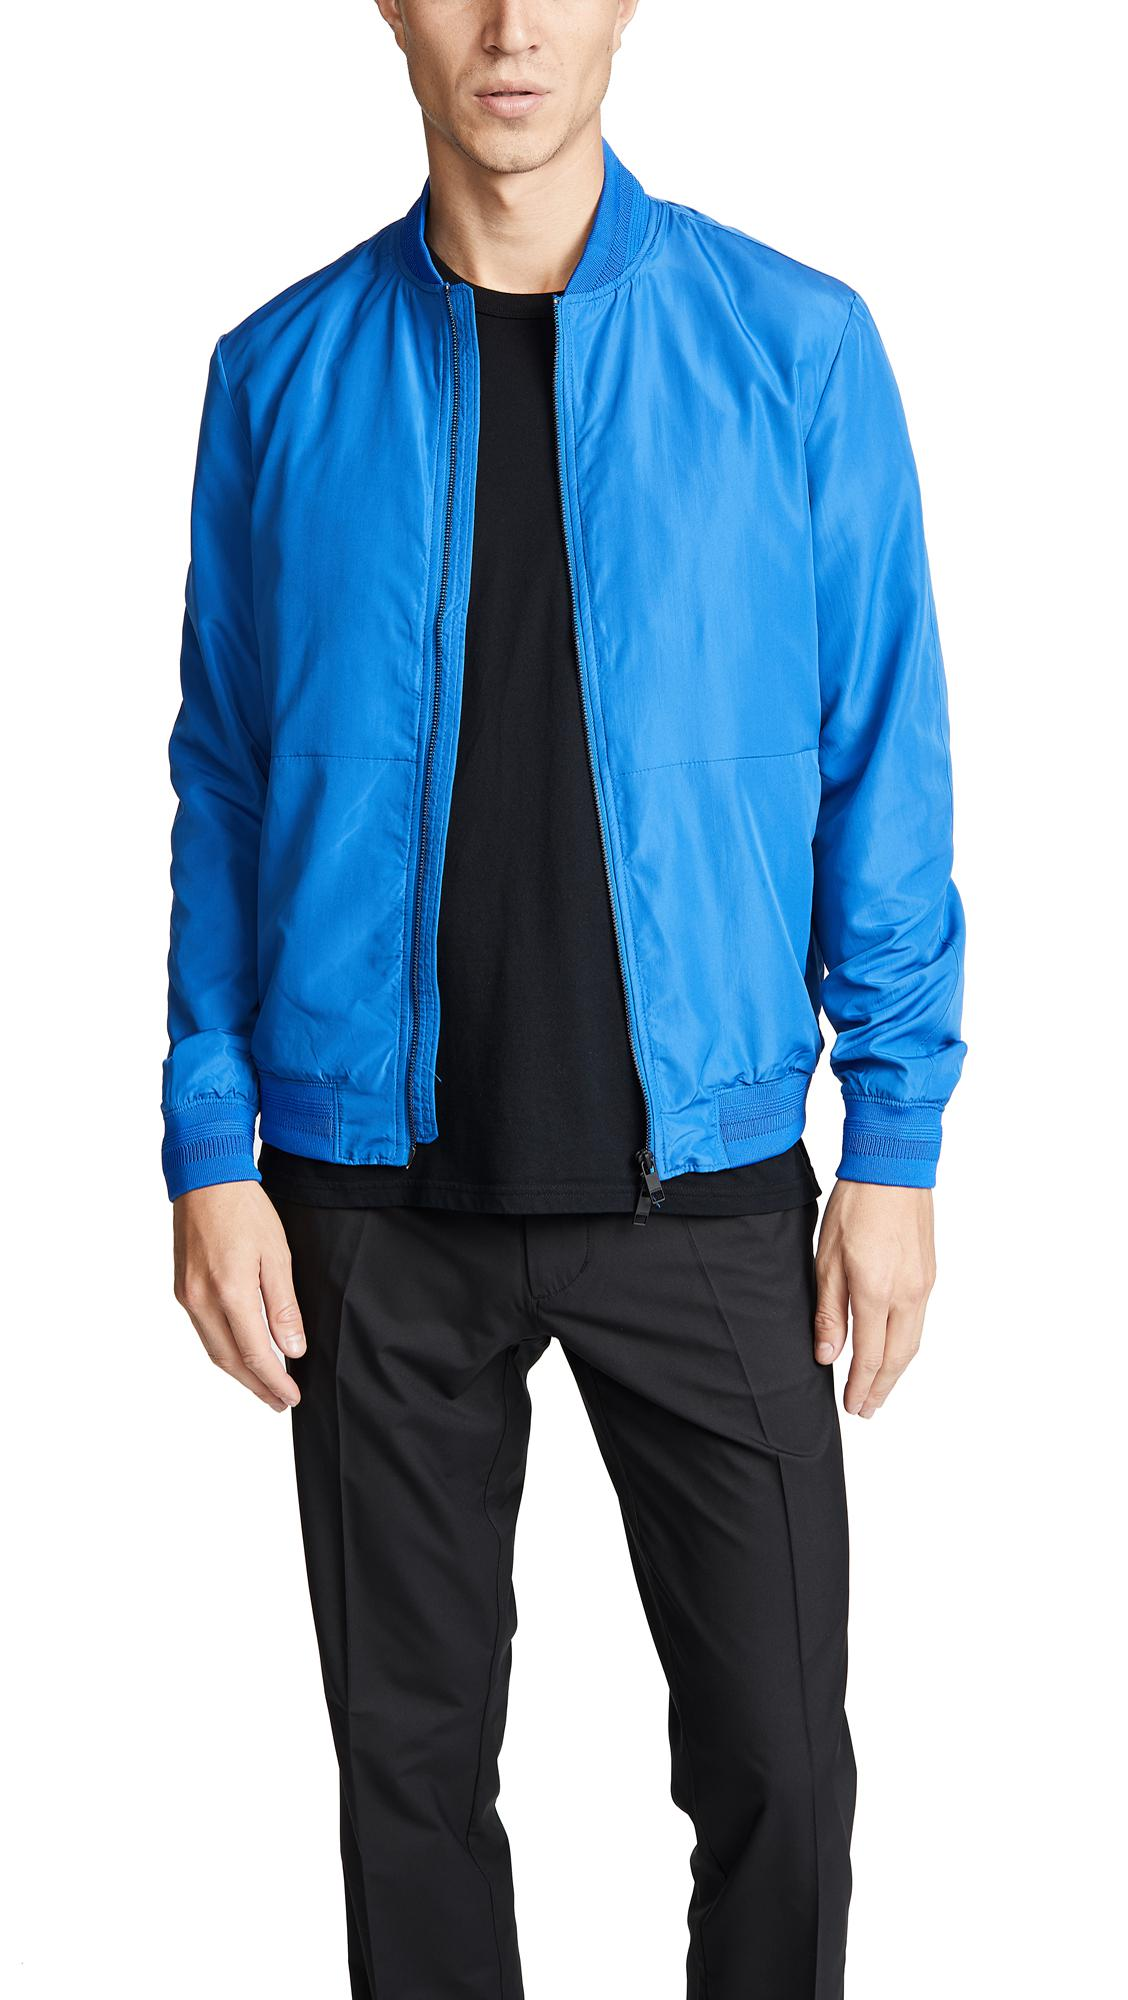 f43e6fbfd Lyst - J.Lindeberg Thom Gravity Jacket in Blue for Men